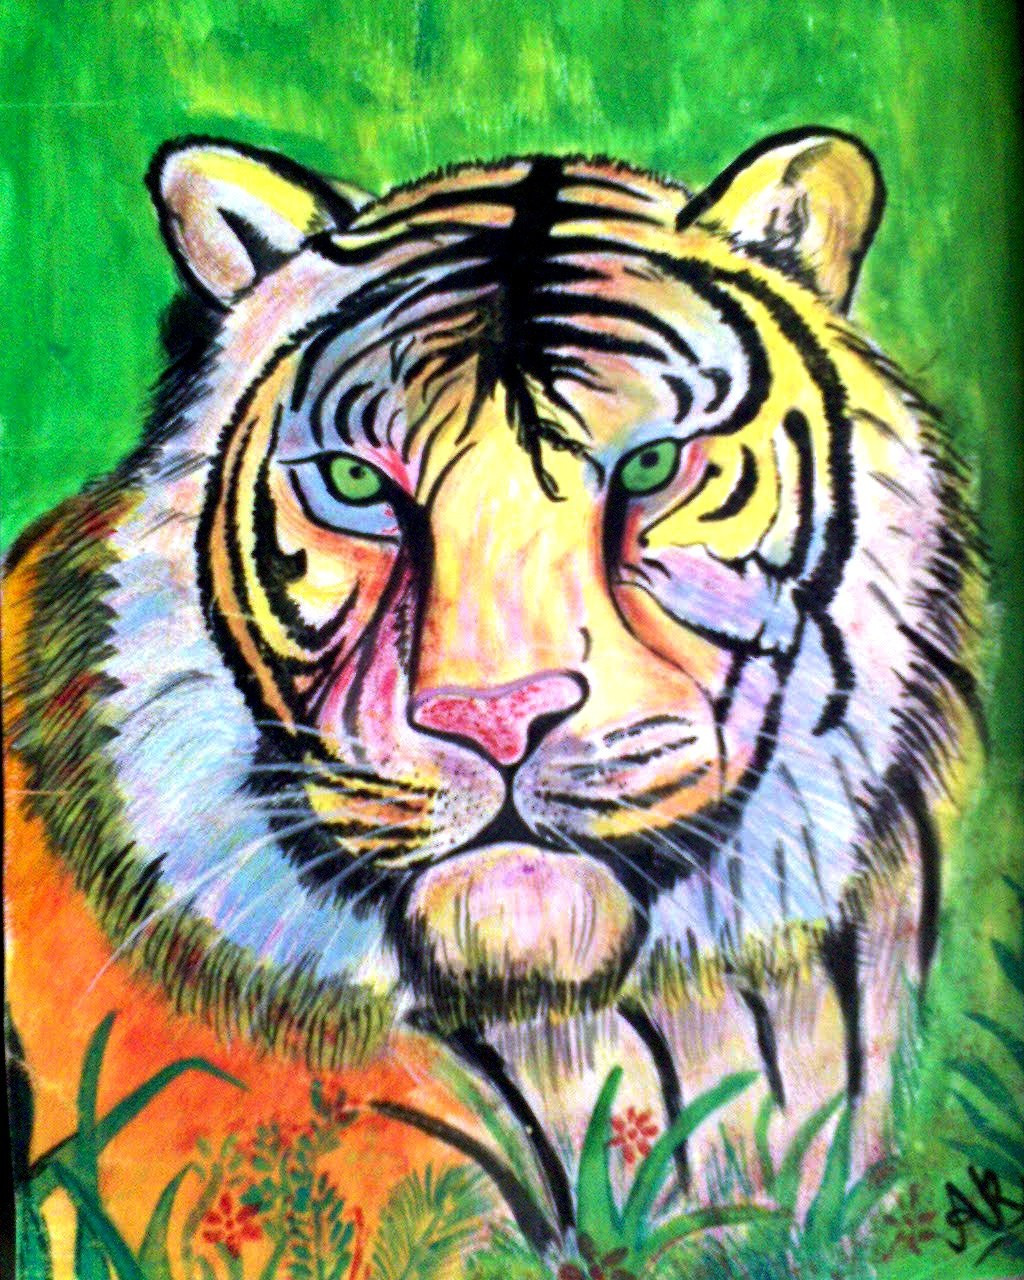 Buy Fearless Lead Of The Jungle Handmade Painting By Aakash Jain